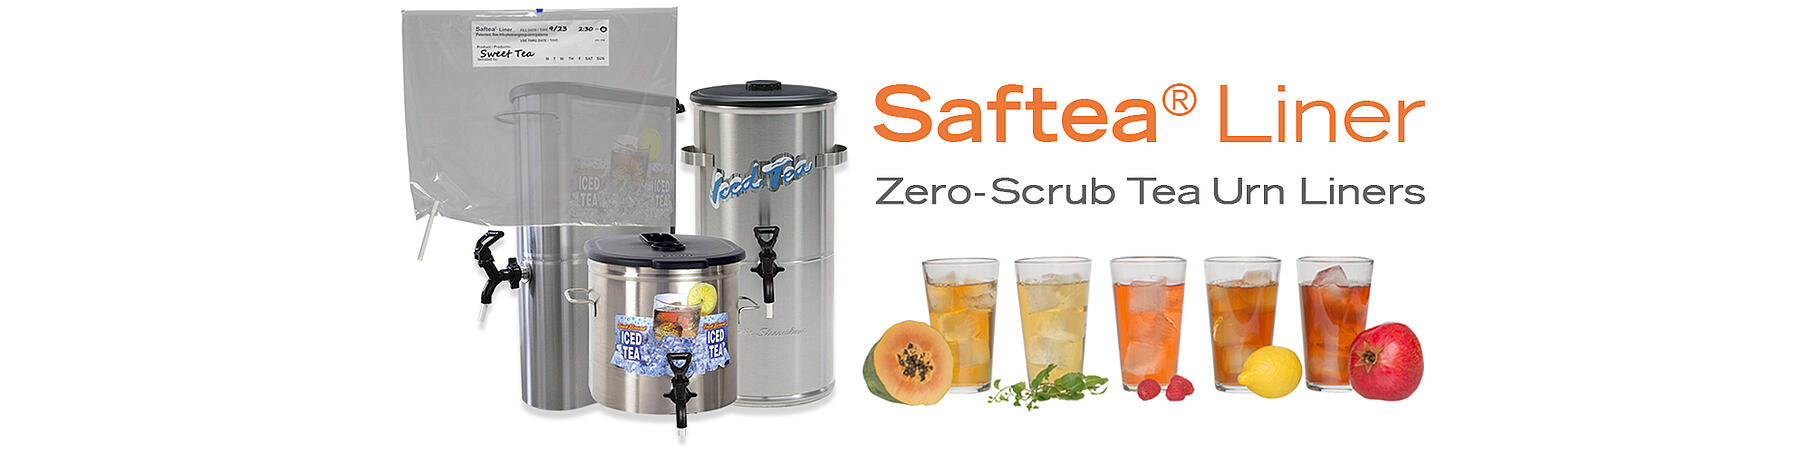 Saftea Liners fit most standard size urns.